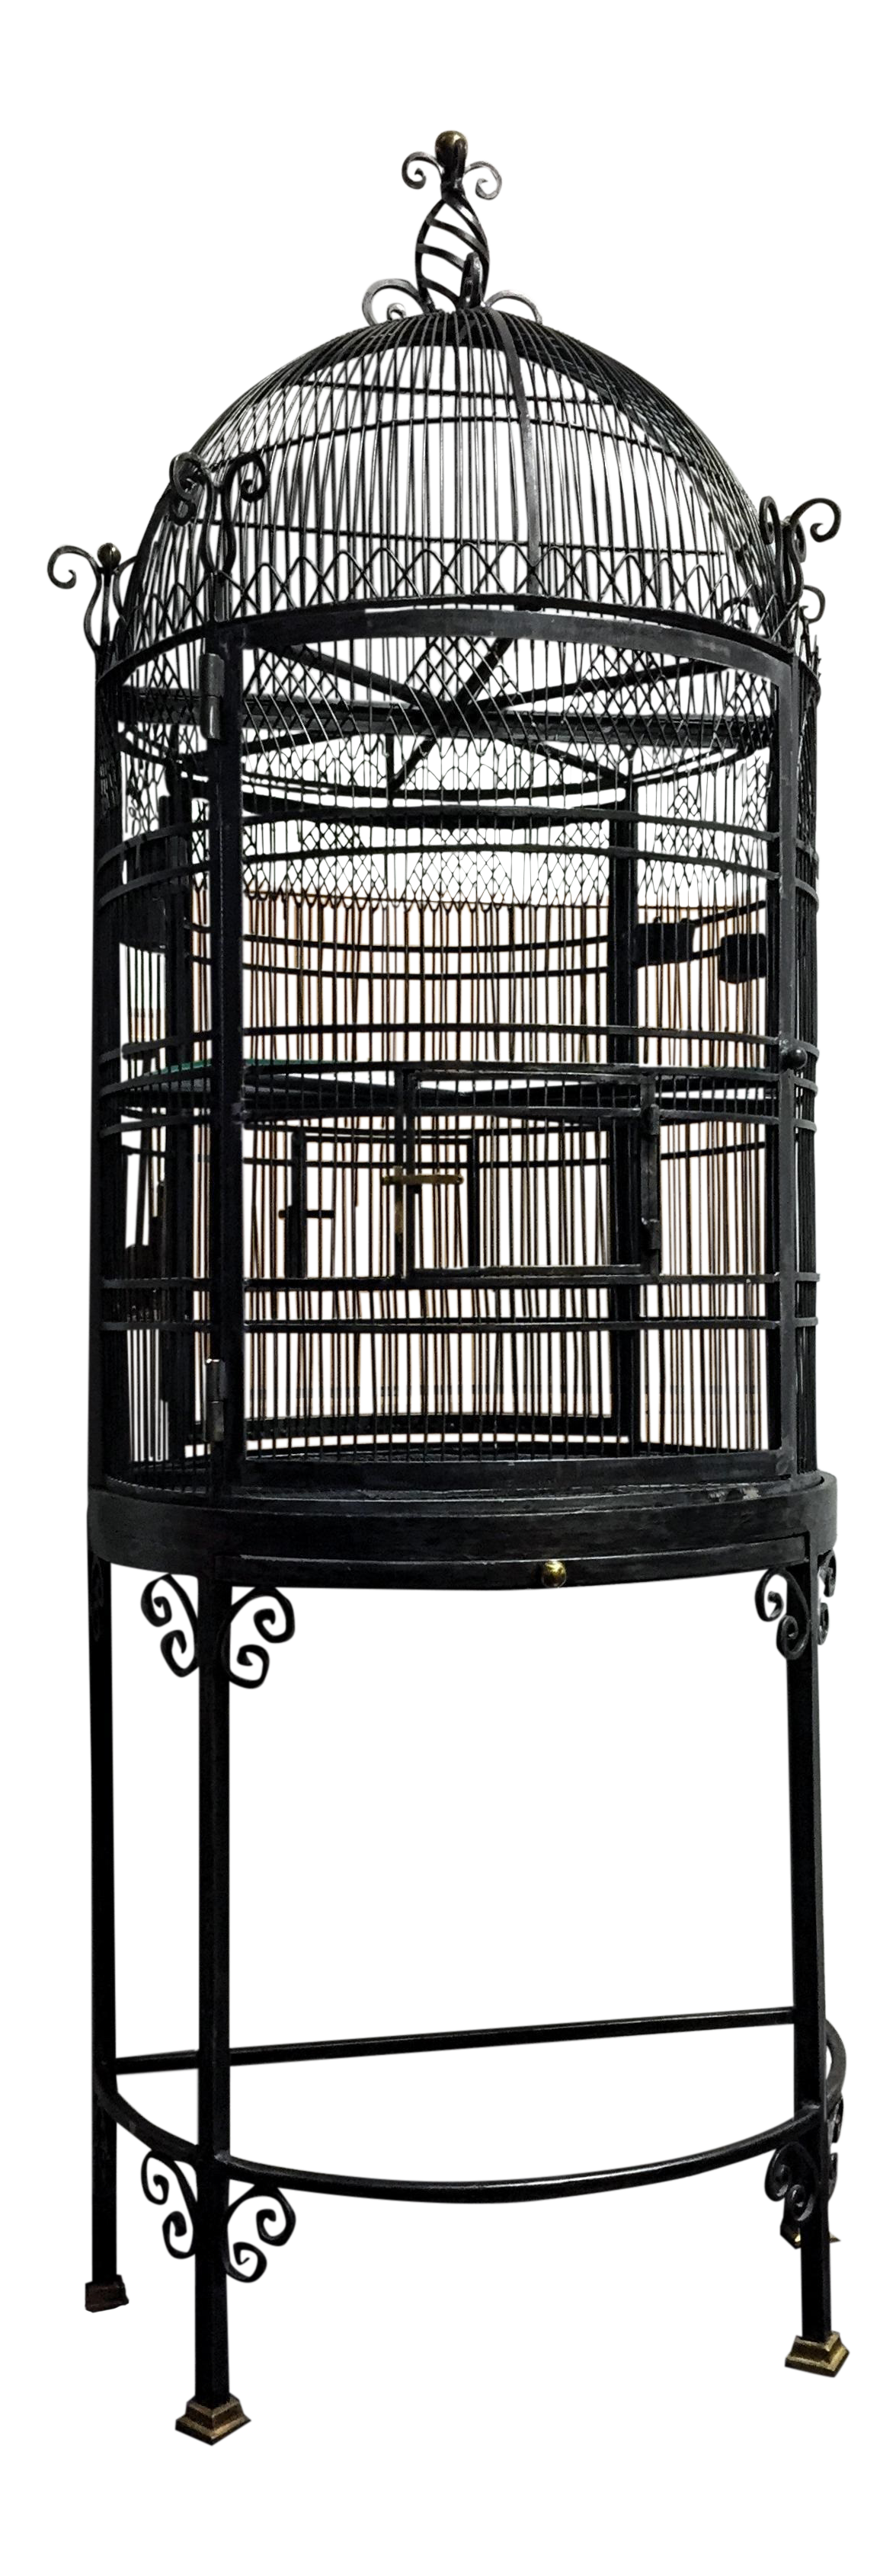 Victorian Steel Metal Bird Cage Decorative & Functional Maitland Smith |  Chairish